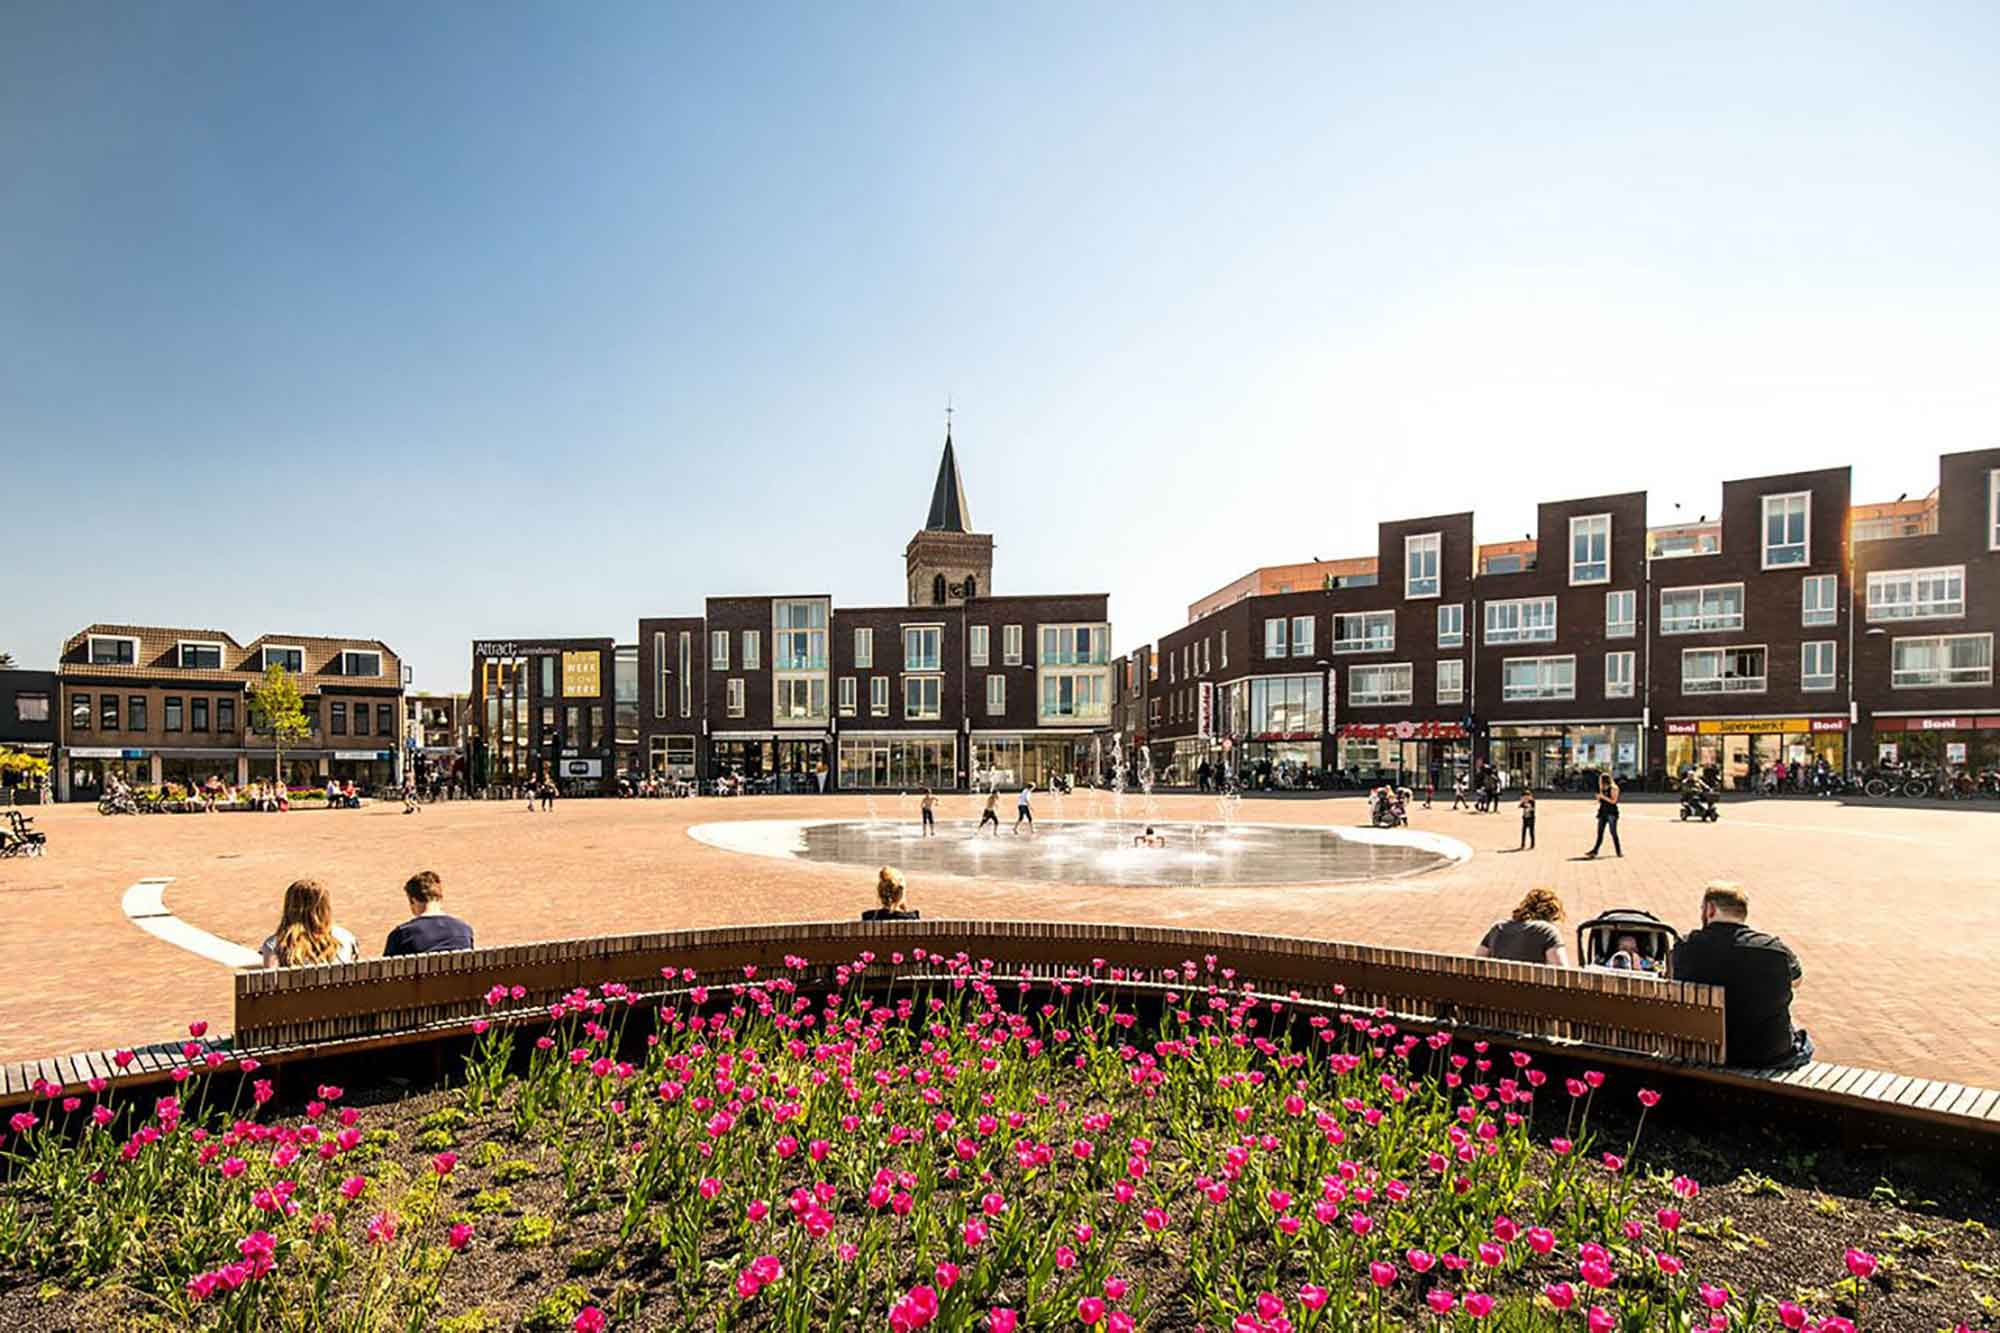 Ede centrum @ Urban Solutions (strategie - concept), MagicPlaces®-methode